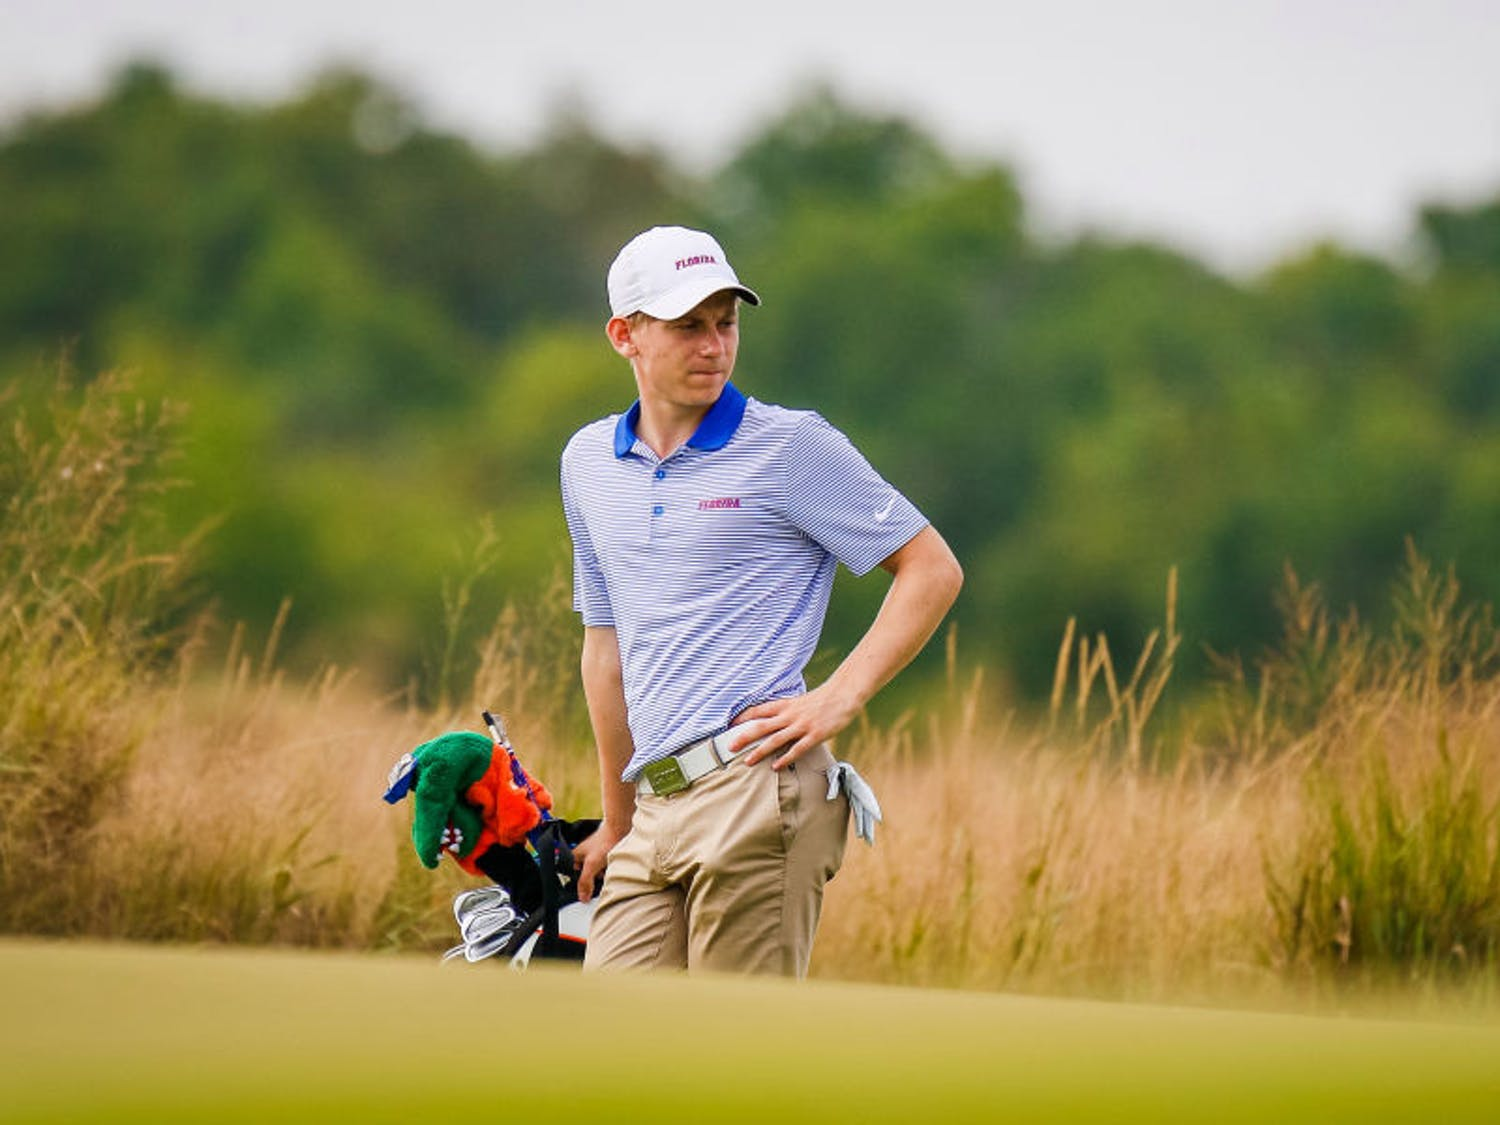 UF golfer John Axelsen is 5 under after the first day of the Tavistock Collegiate Invitational, helping the Gators finish the day in second place.